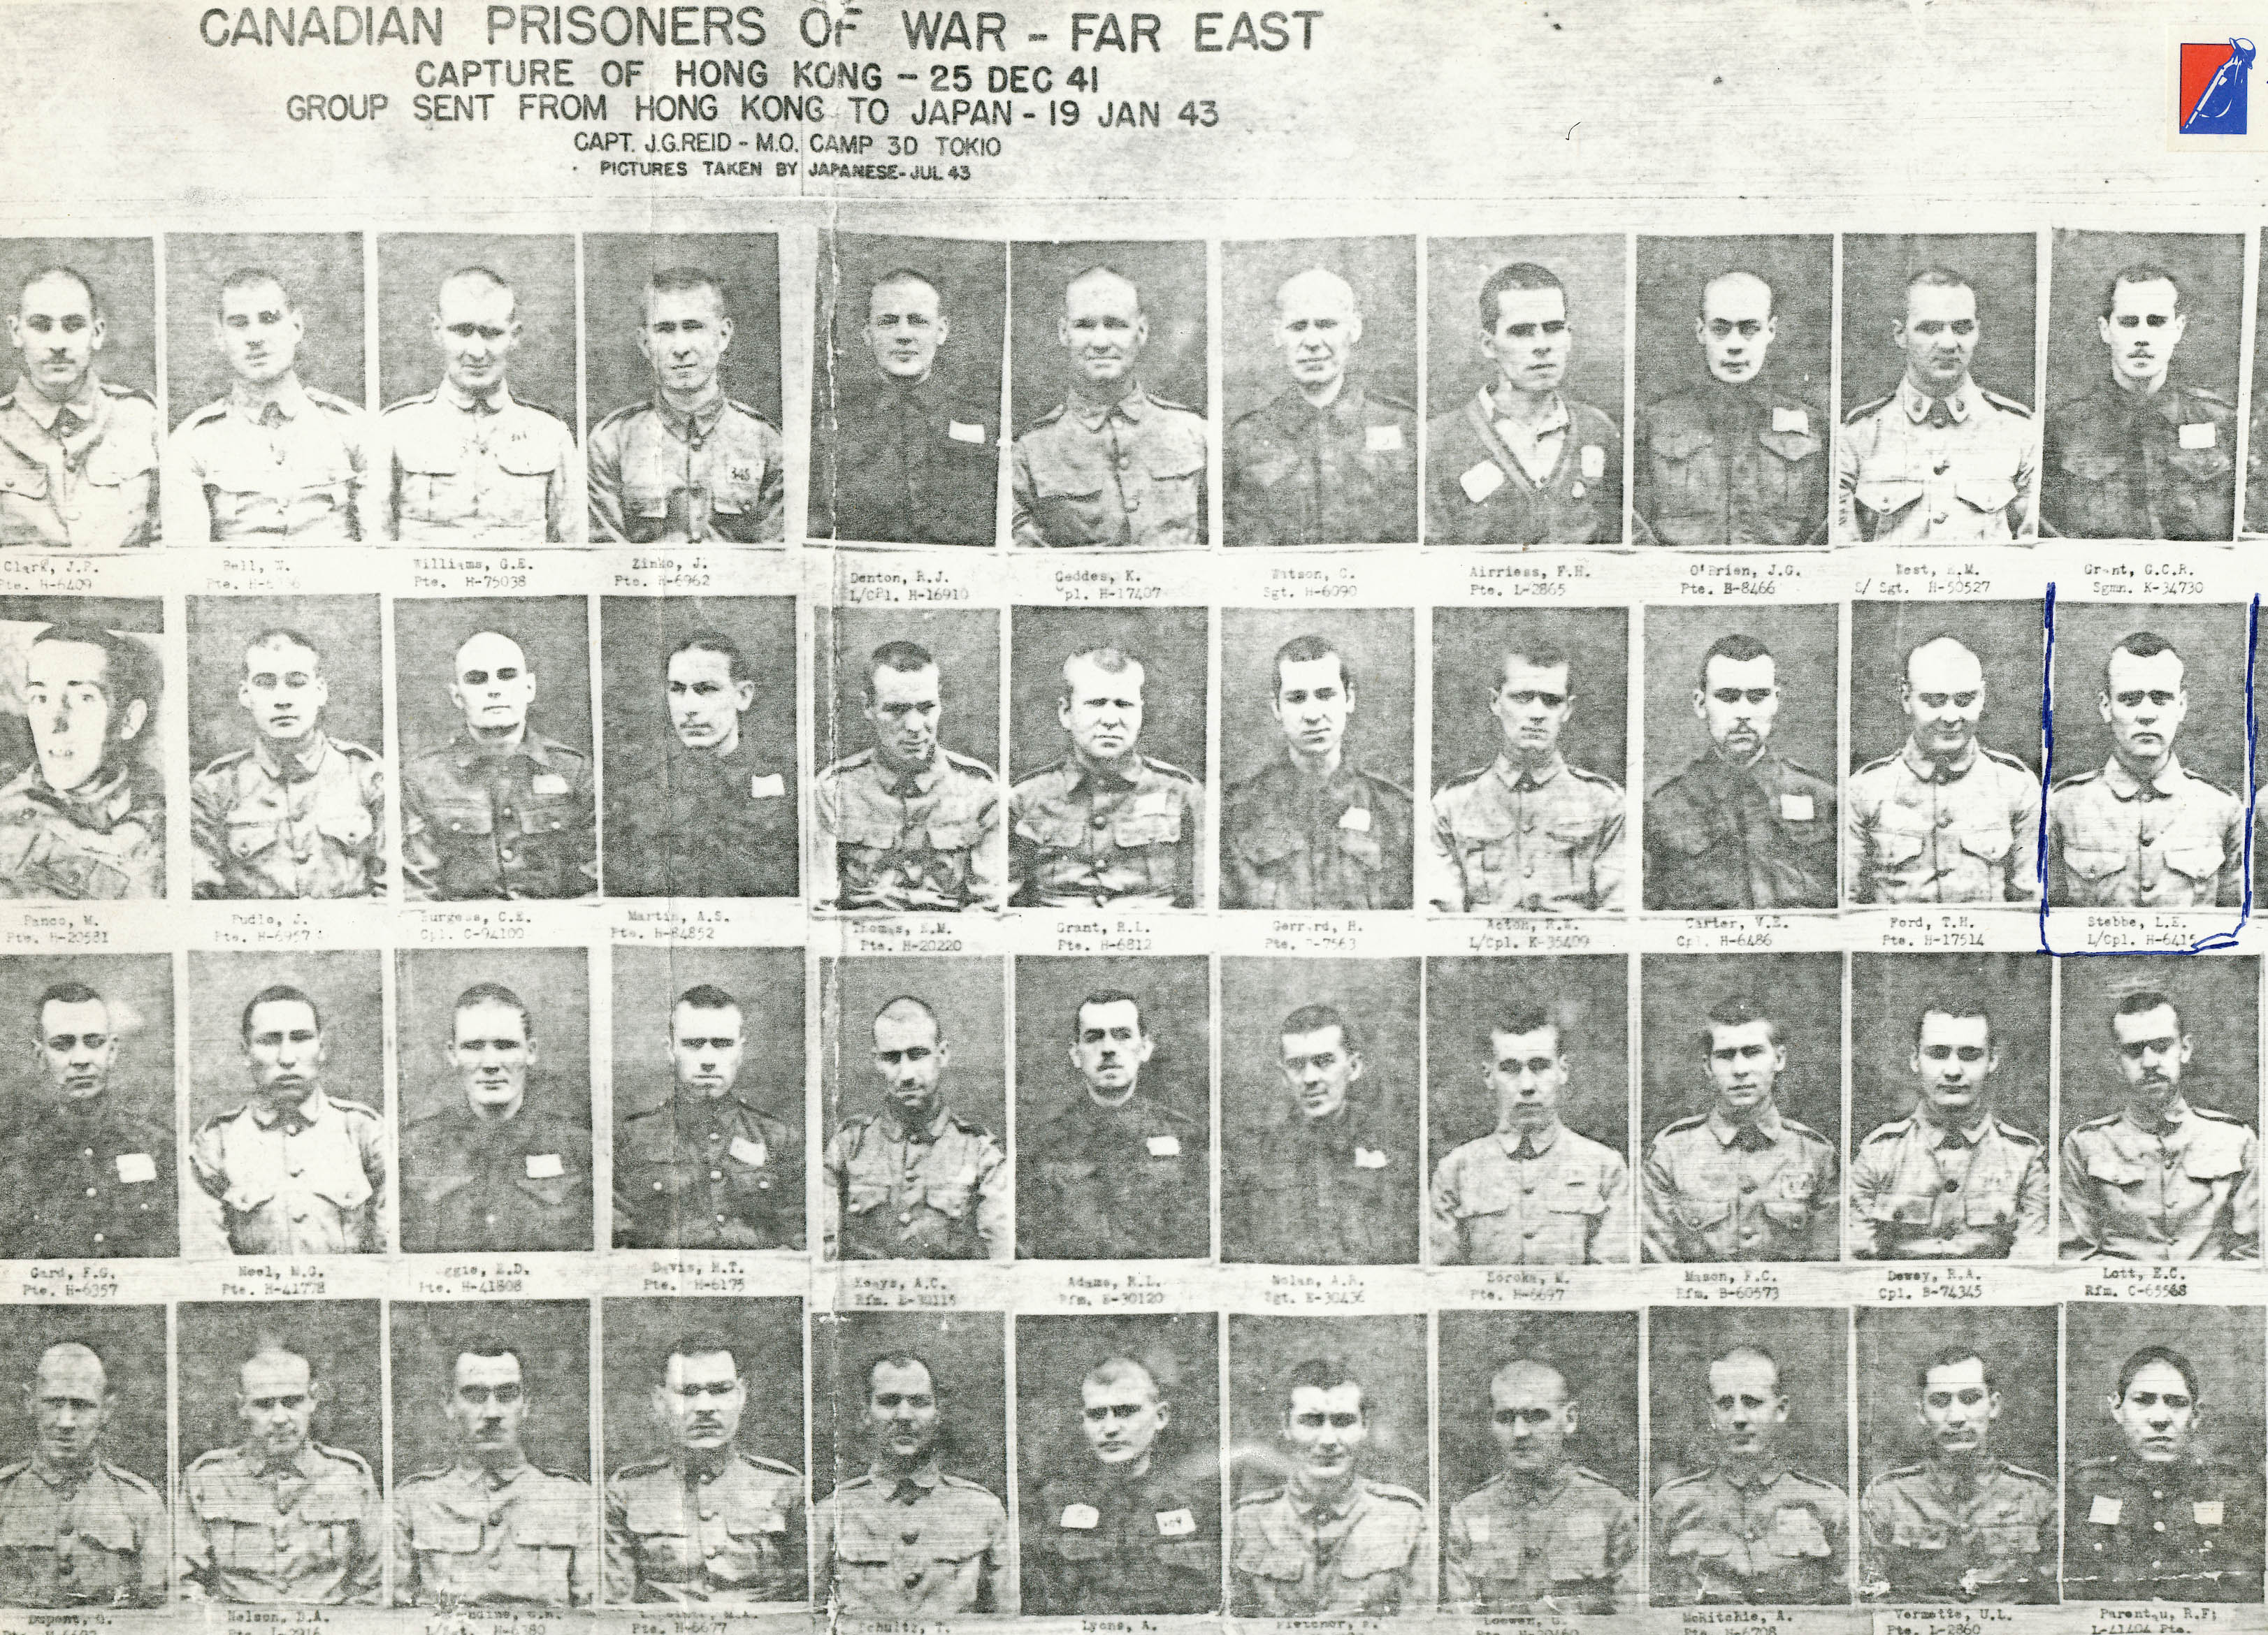 Canadian Prisoners of War